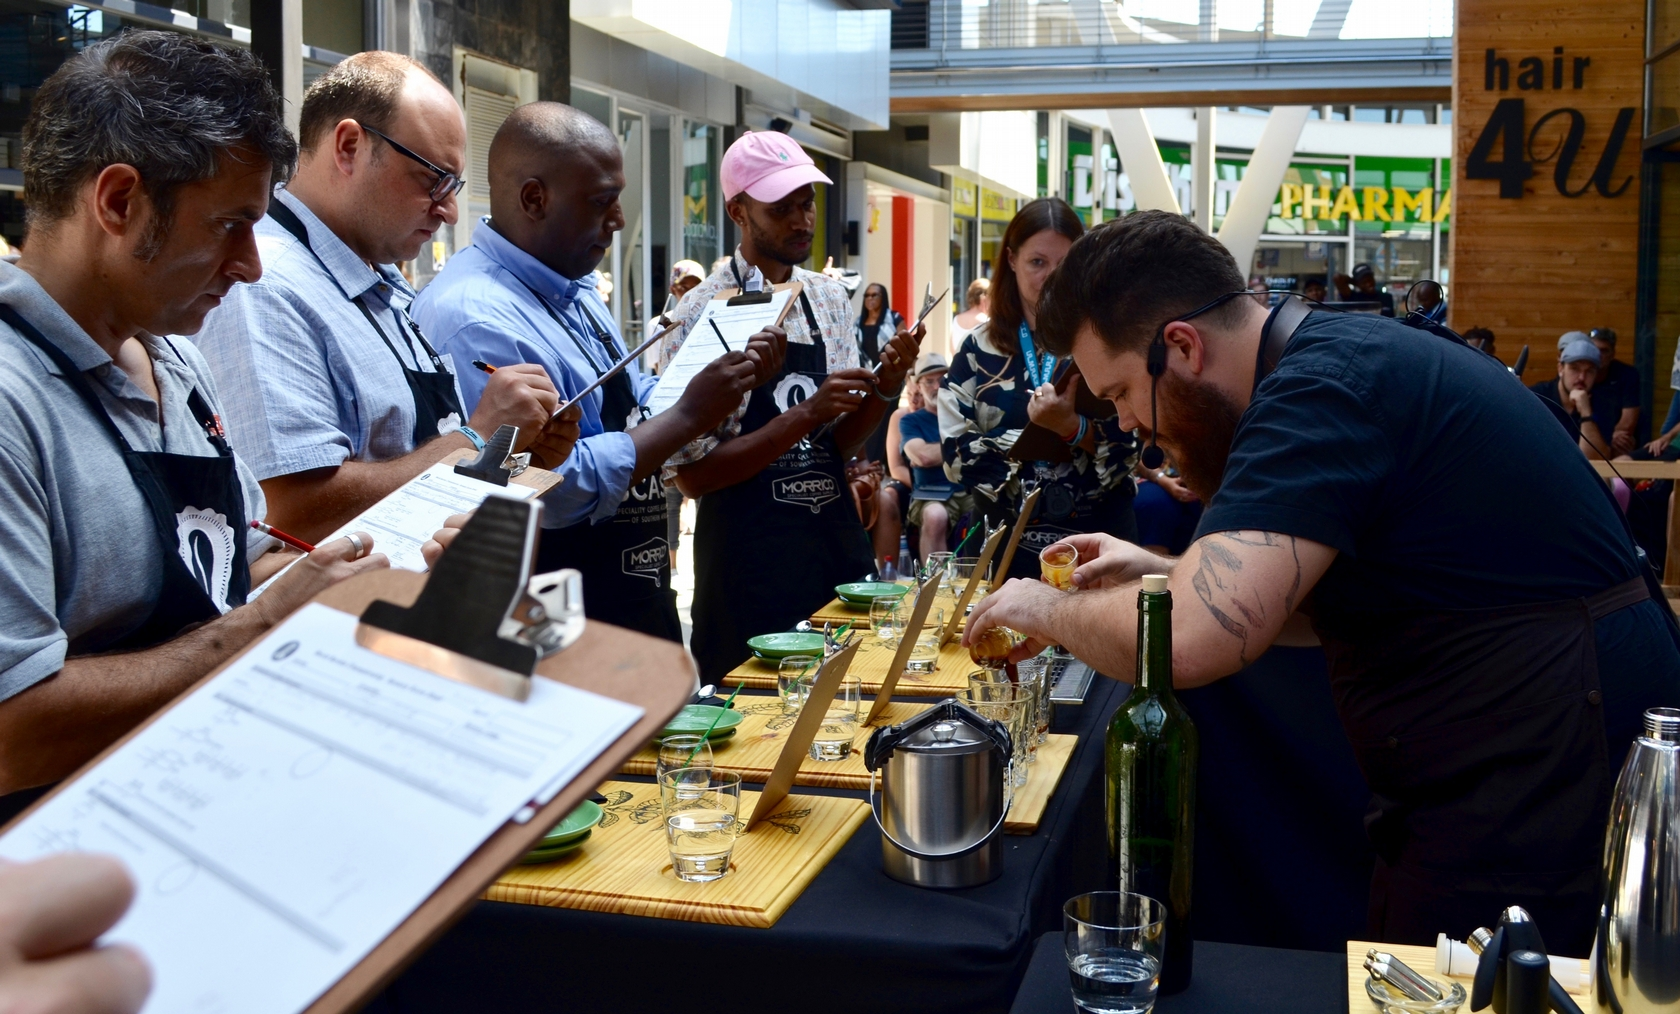 Feature: Harry Mole, SA Barista Champion 2019, has his eyes to the stars